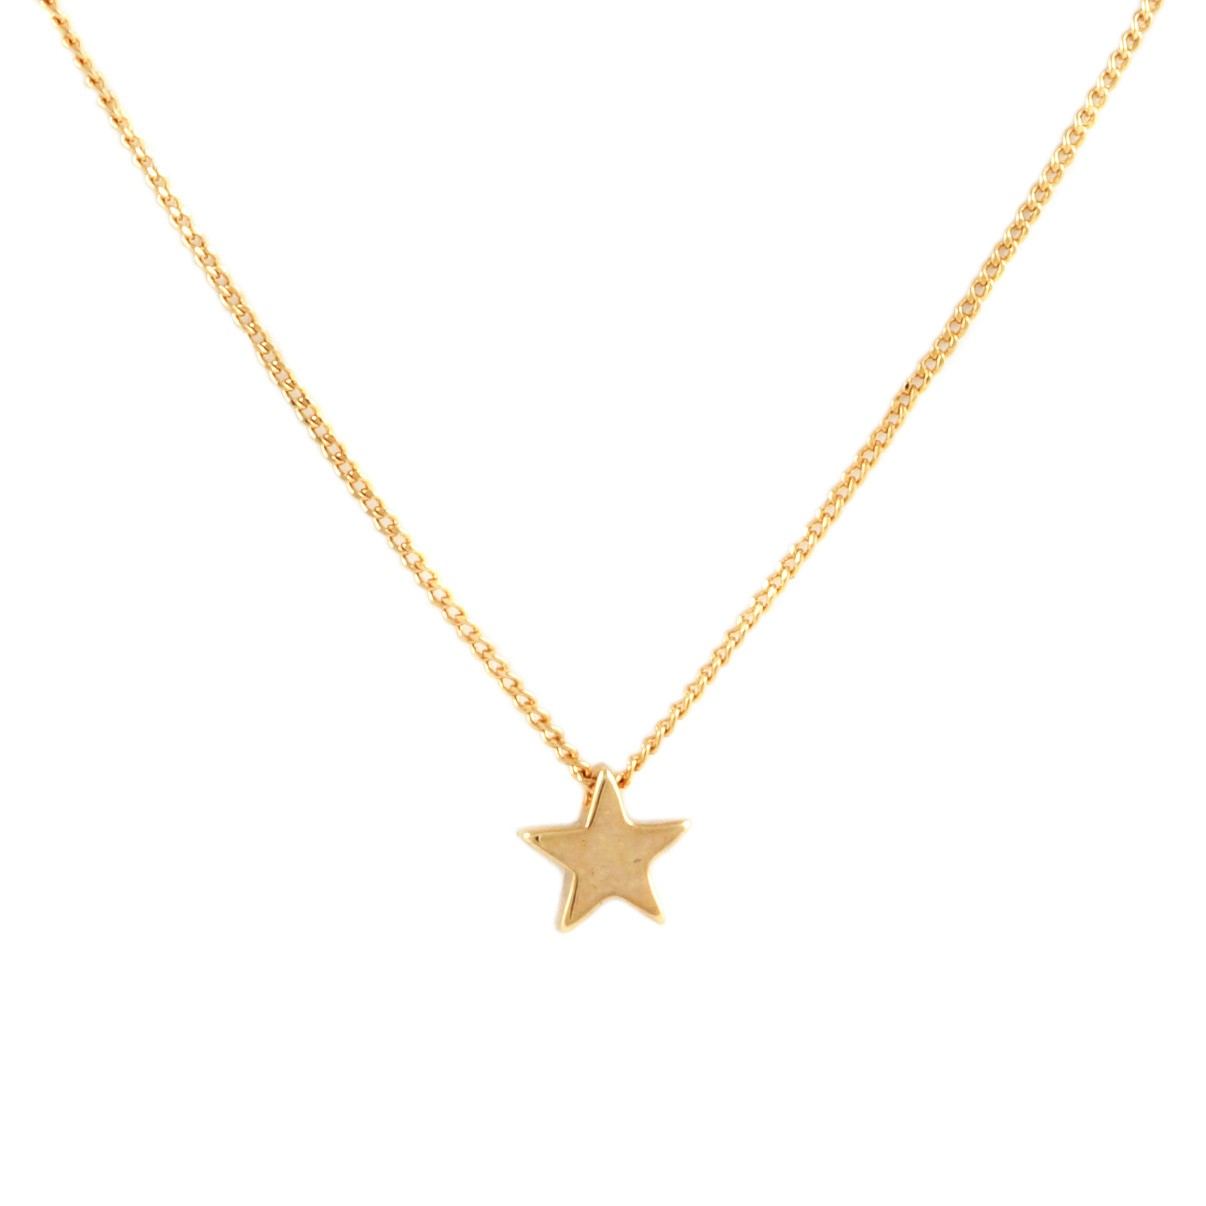 Dainty Star Necklace | Gold Plated on titanium